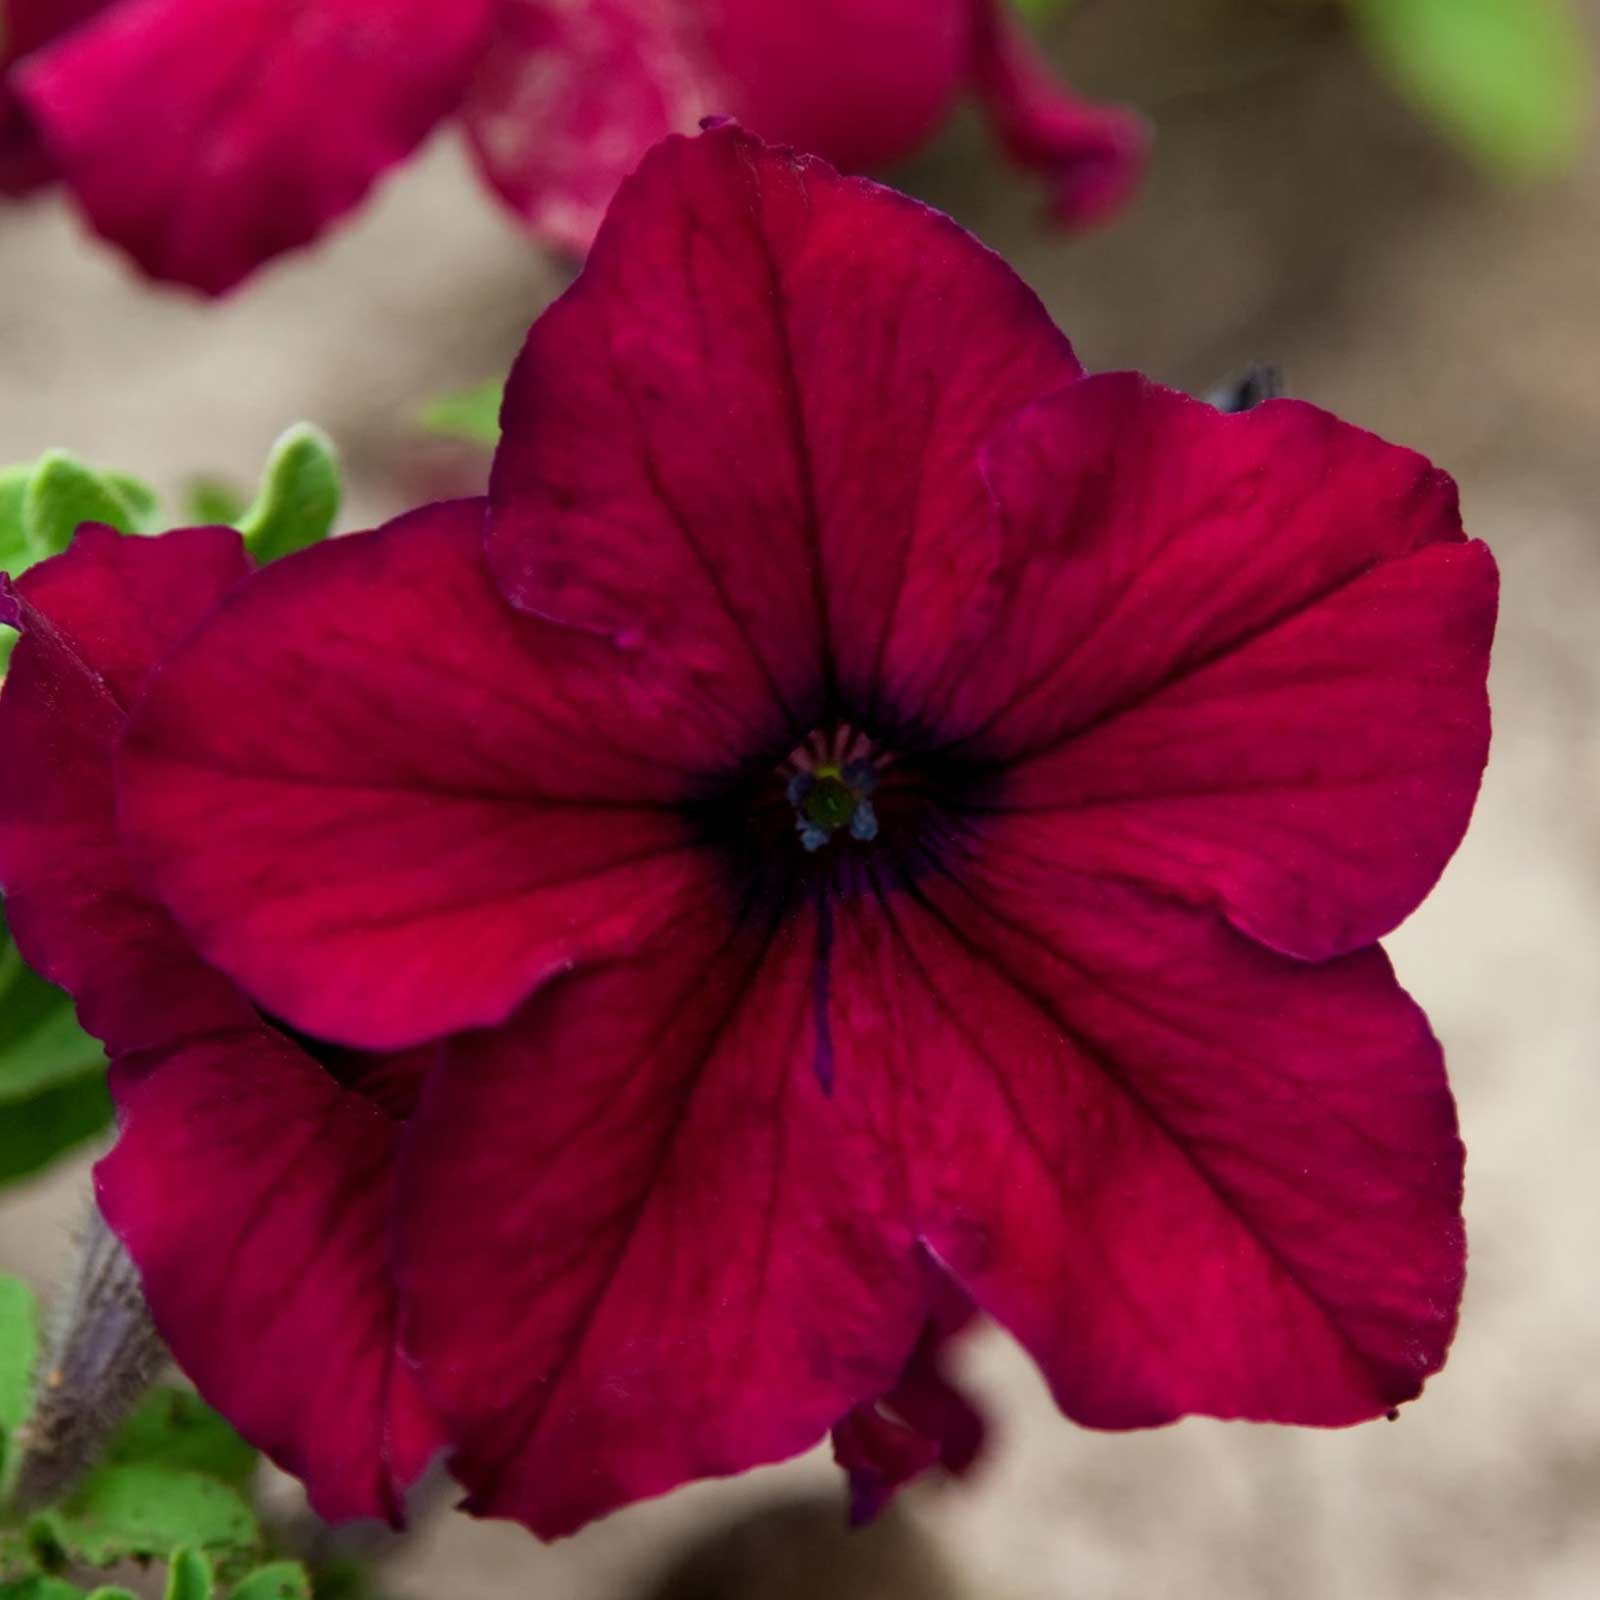 Petunia - Supercascade Series Flower Garden Seed - 1000 Pelleted Seeds - Blush Color Blooms - Annual Flowers - Single Grandiflora Petunias